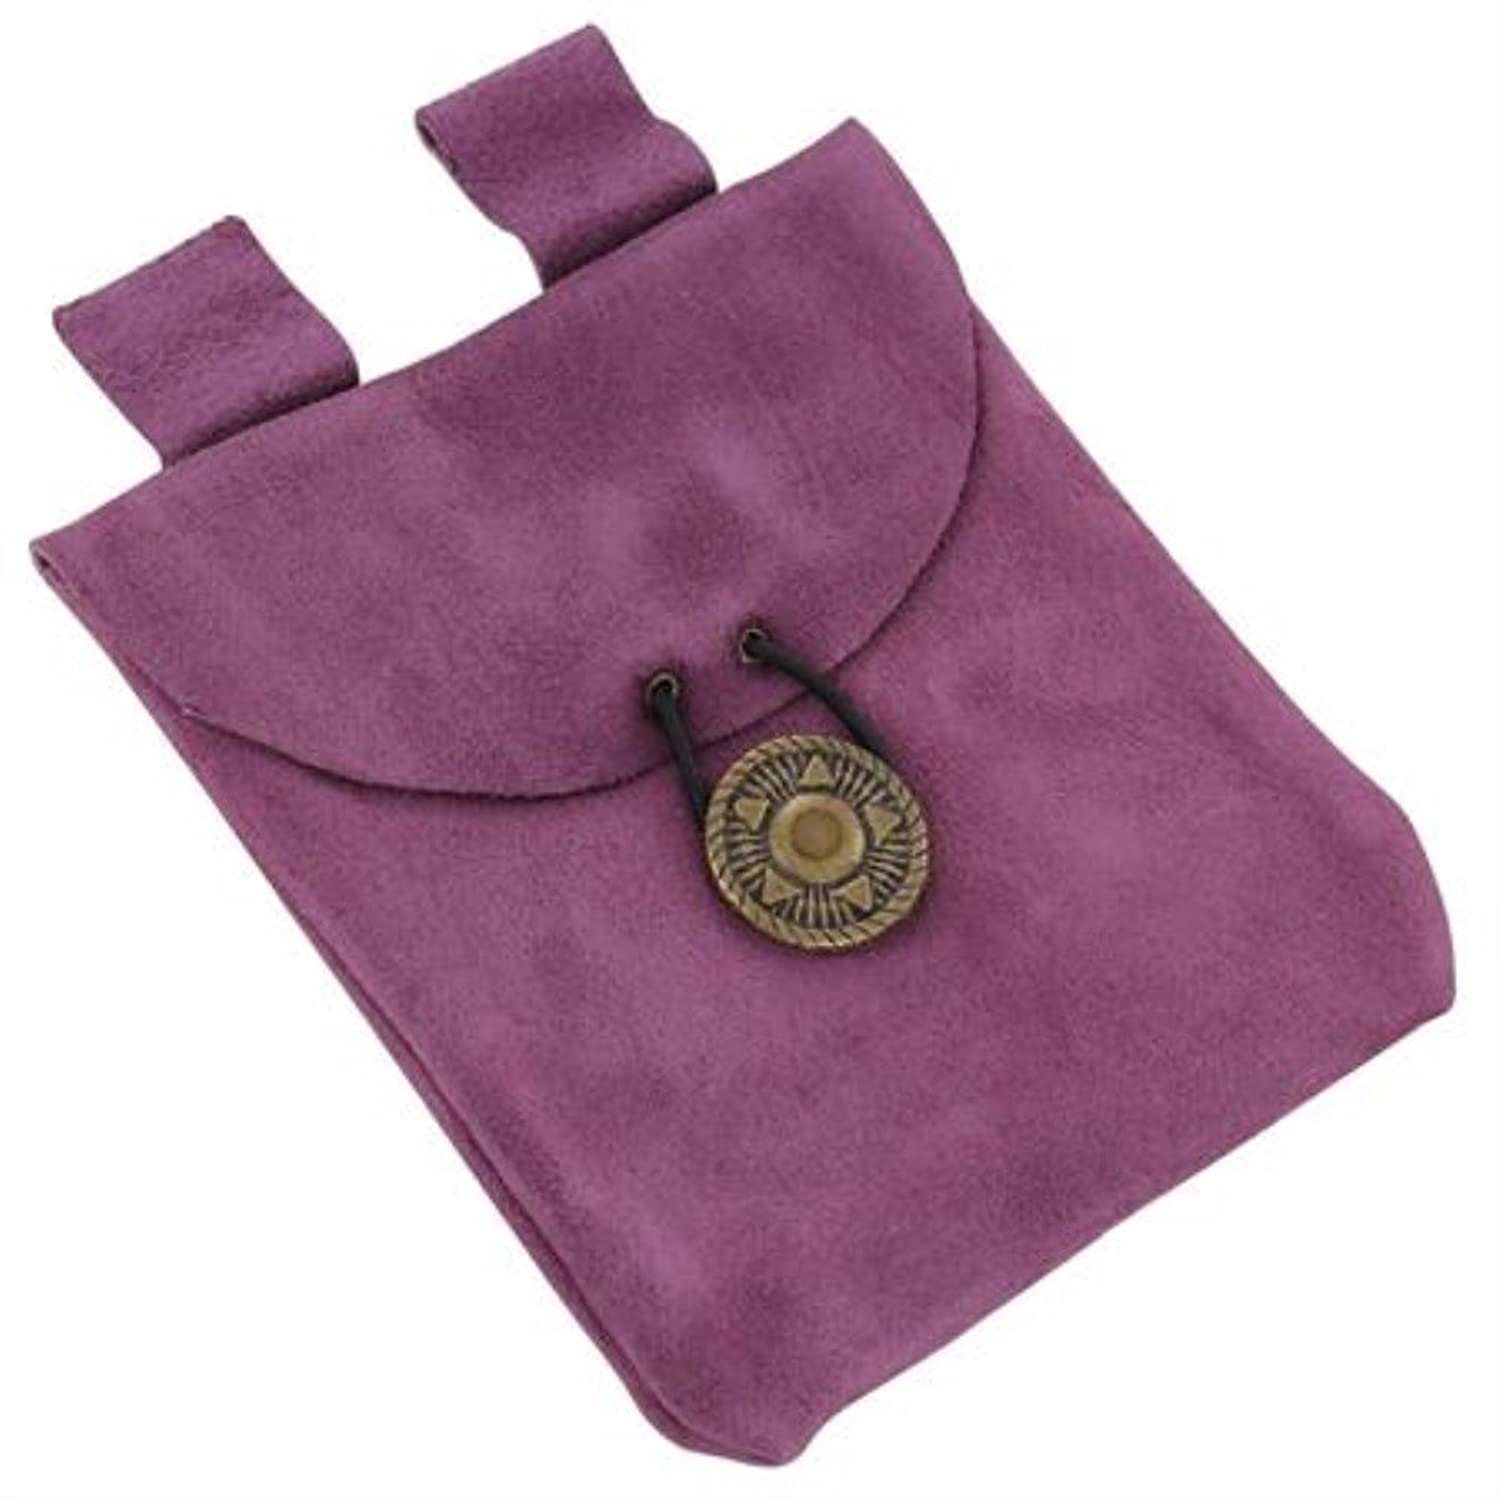 Small Medieval Lavender Suede Leather Belt Pouch